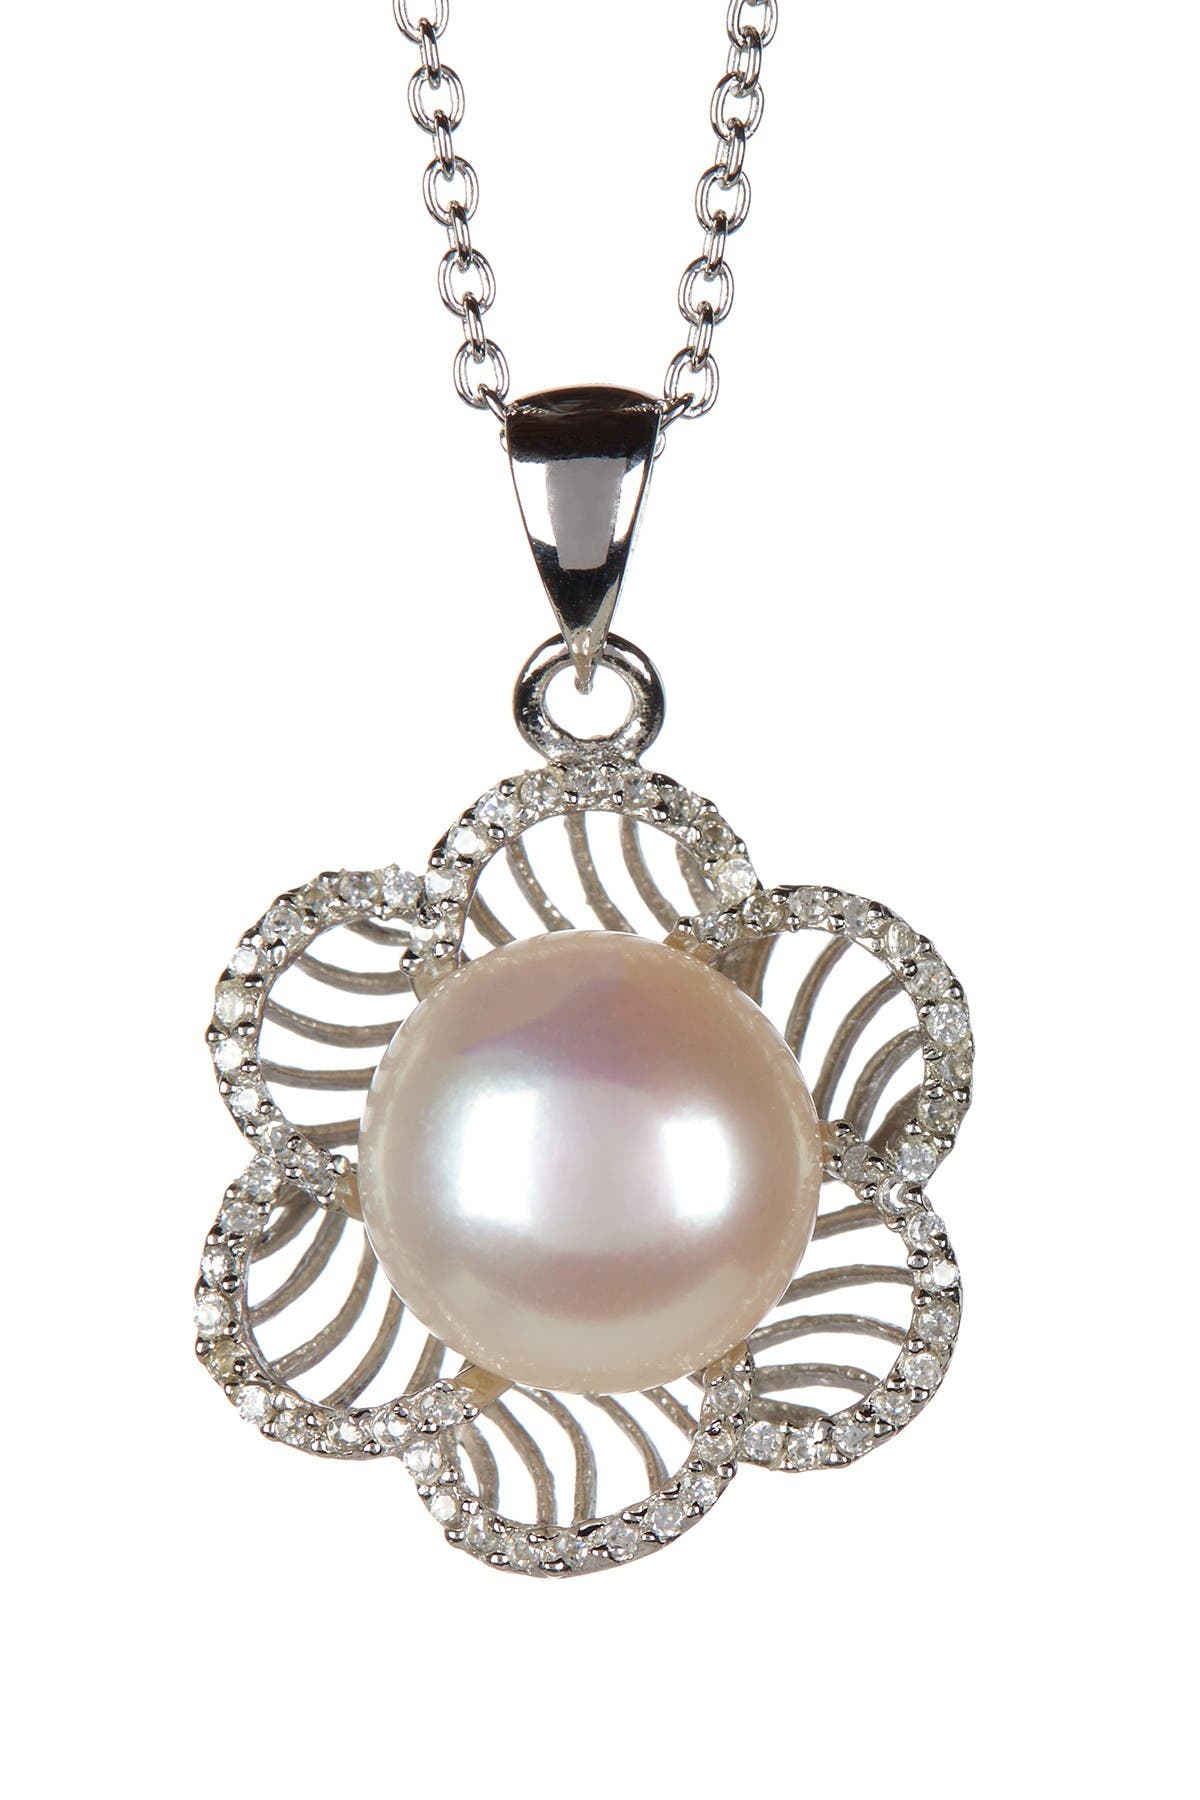 Image of Splendid Pearls 9-10mm White Cultured Freshwater Pearl & CZ Flower Pendant Necklace